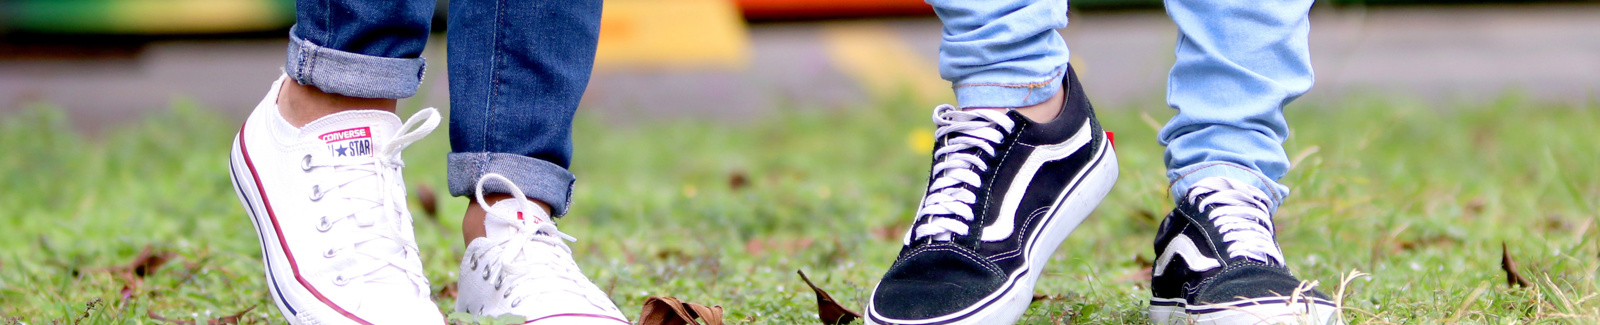 Photo of two young peoples feet with vans and converse.